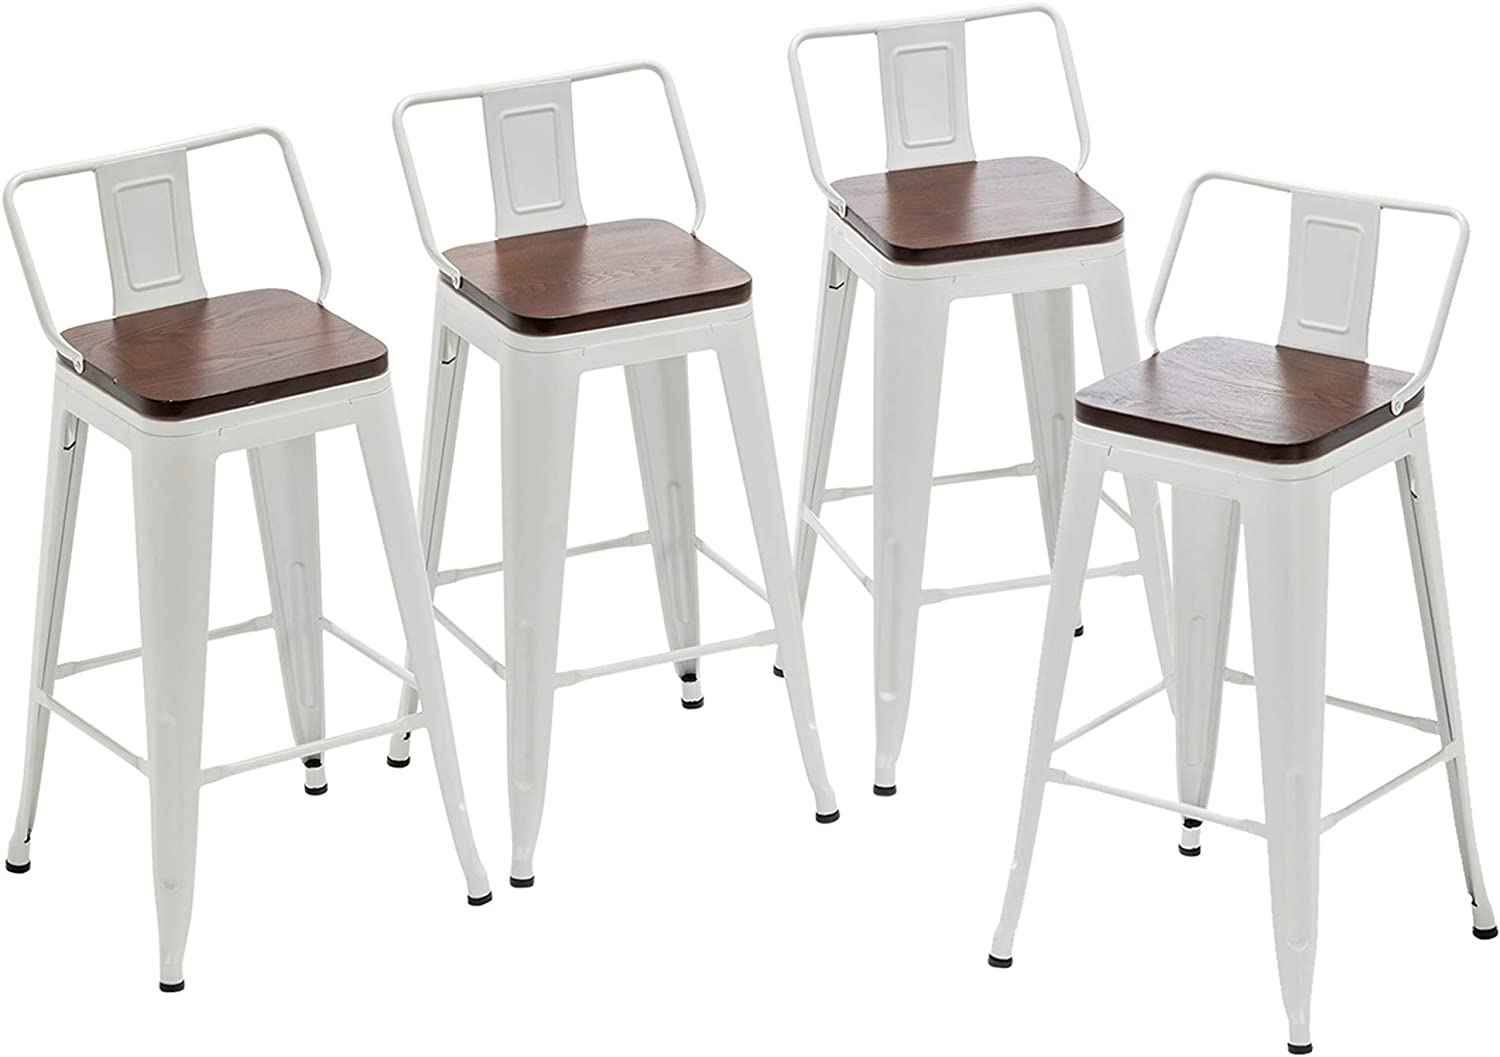 """Yongqiang 9"""" Metal Bar Stools with Back Set of 9 Kitchen Counter Height  Stools with Wooden Seat White"""